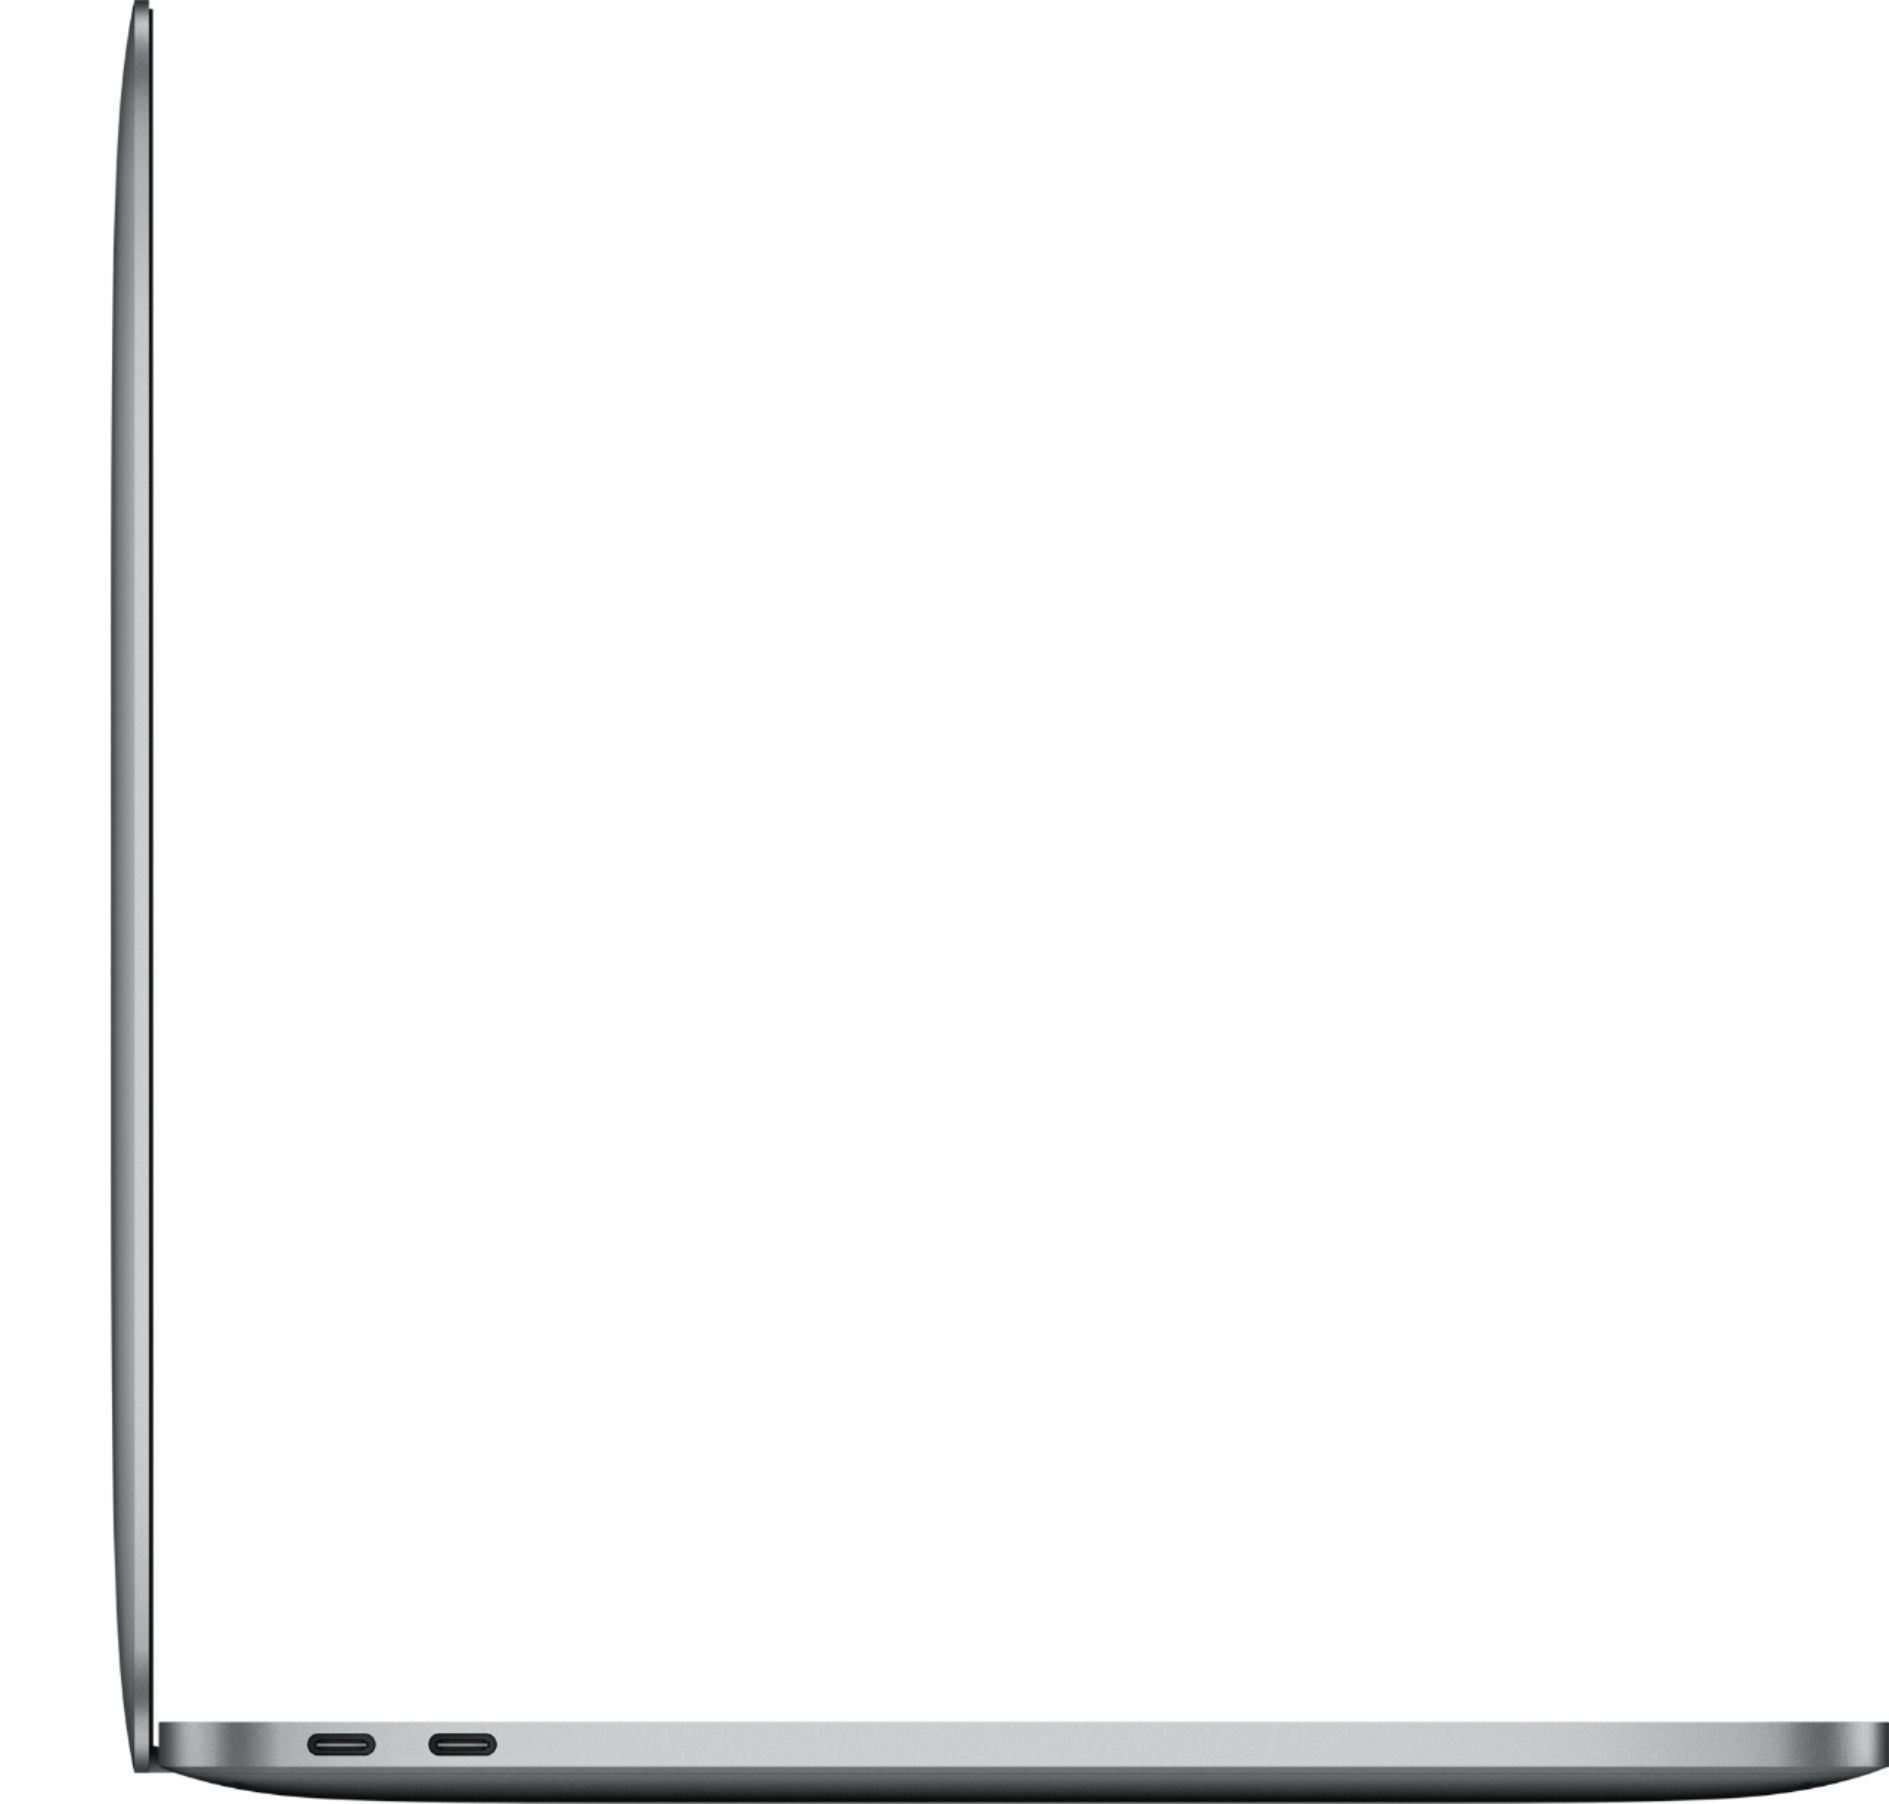 """Alt View Zoom 10. Apple - MacBook Pro 15.4"""" Display with Touch Bar - Intel Core i9 - 32GB Memory - AMD Radeon Pro 555X - 1TB SSD - Space Gray."""